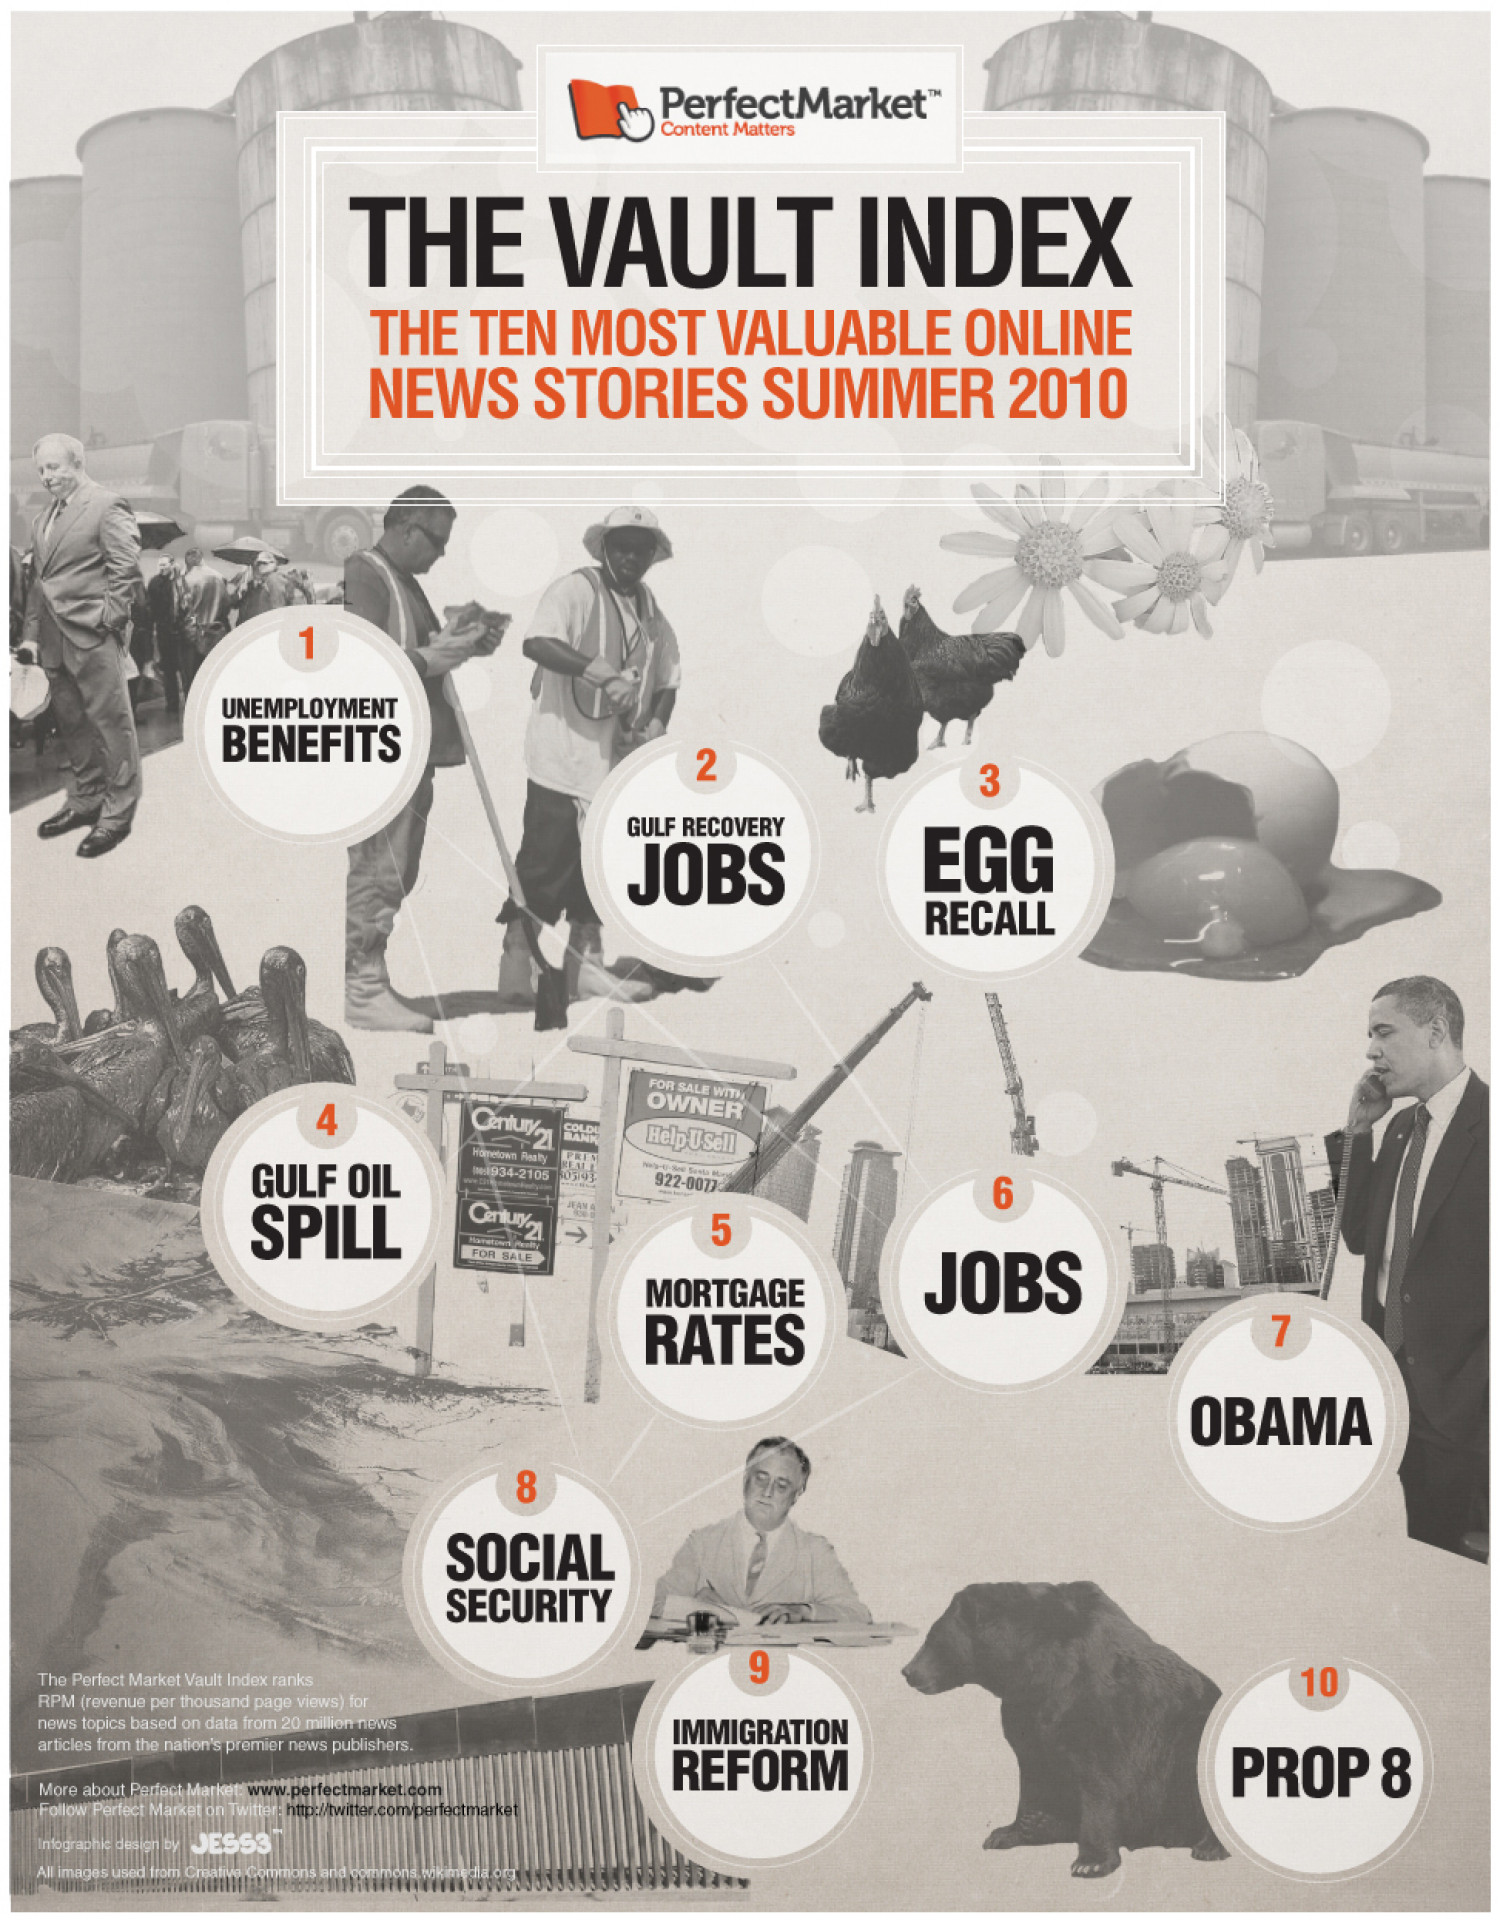 The Vault Index the 10 Most Valuable Online News Stories of Summer 2010 Infographic